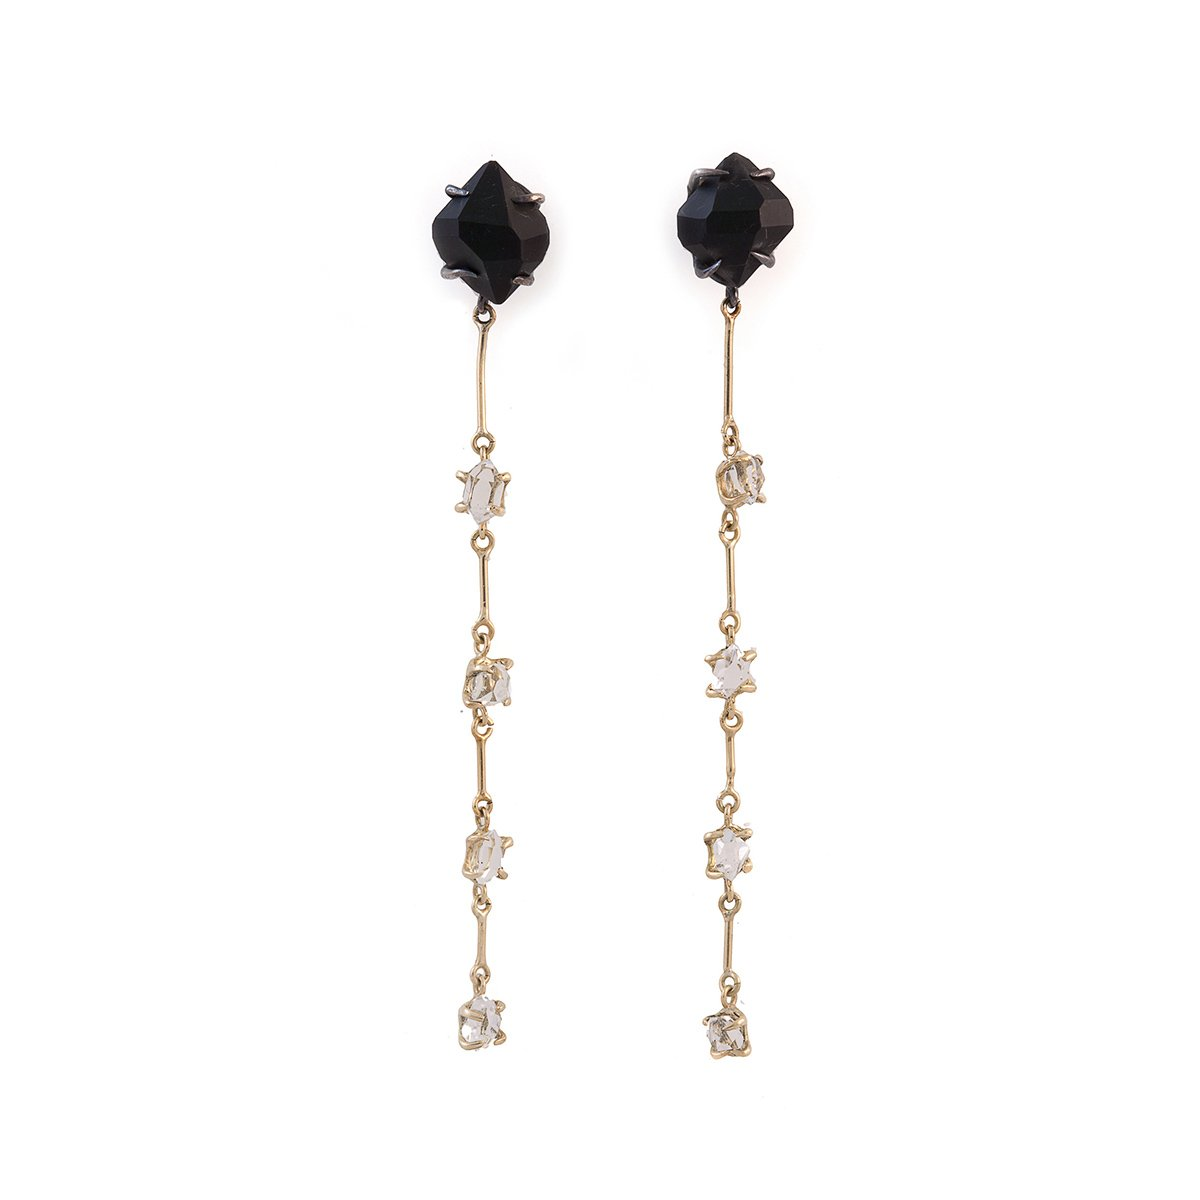 Herkimer Longo Earrings